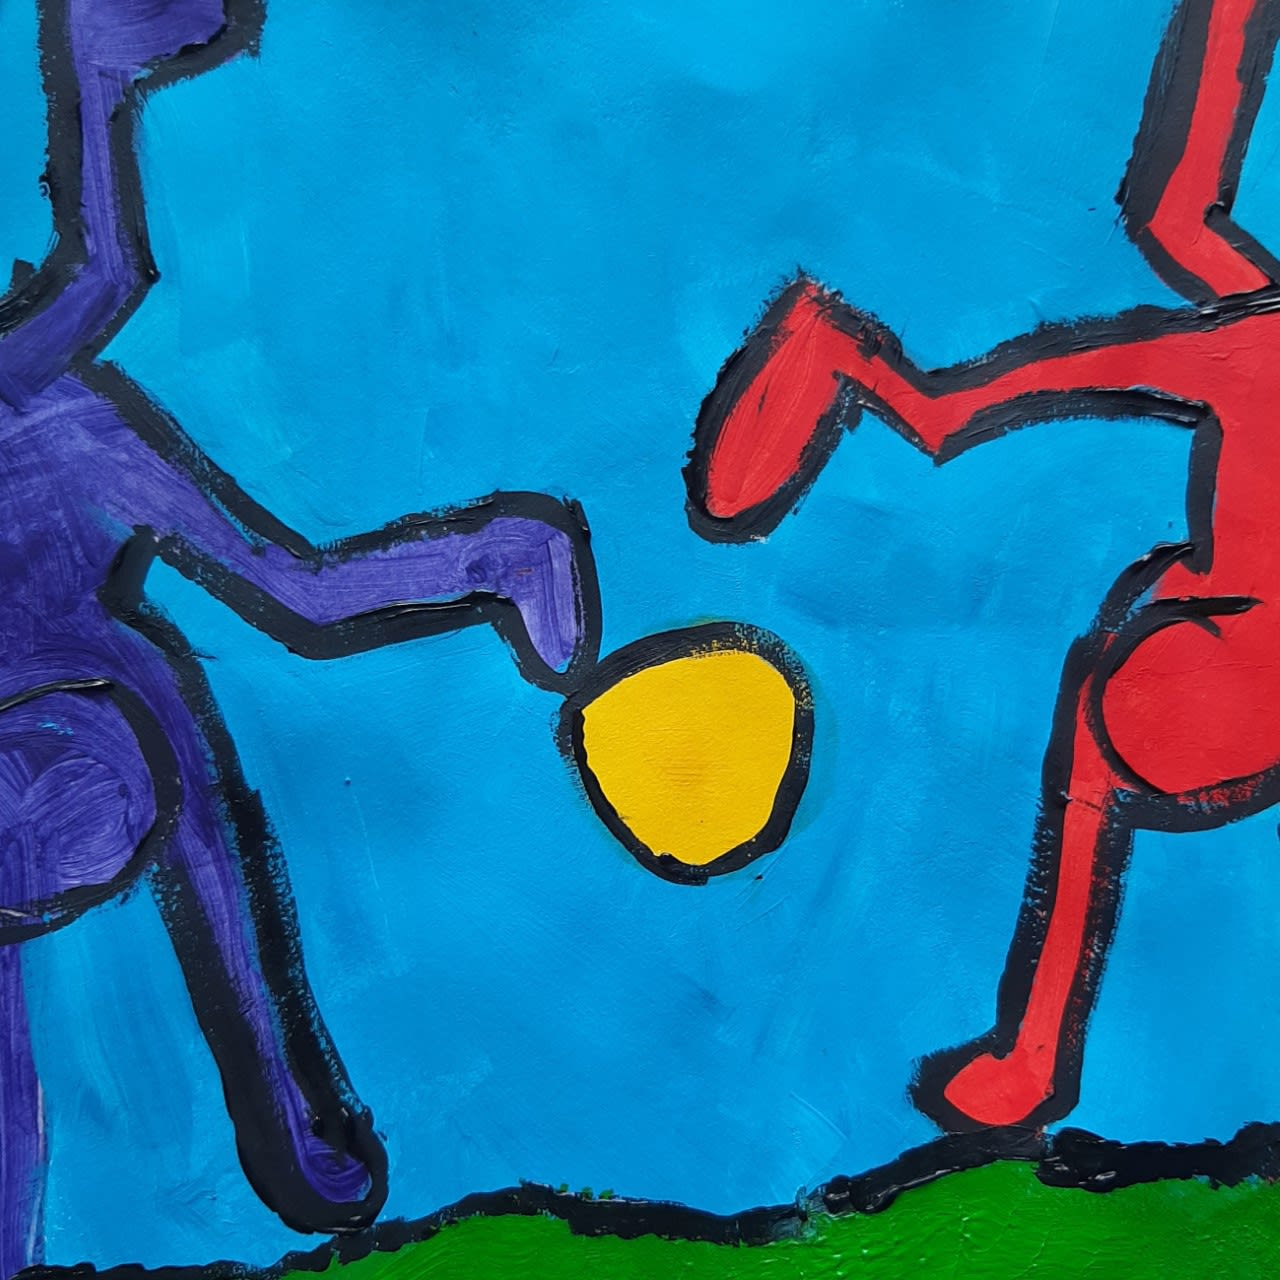 Rebecca Wilson, age 8, Handstands, inspired by Playing People by Haring